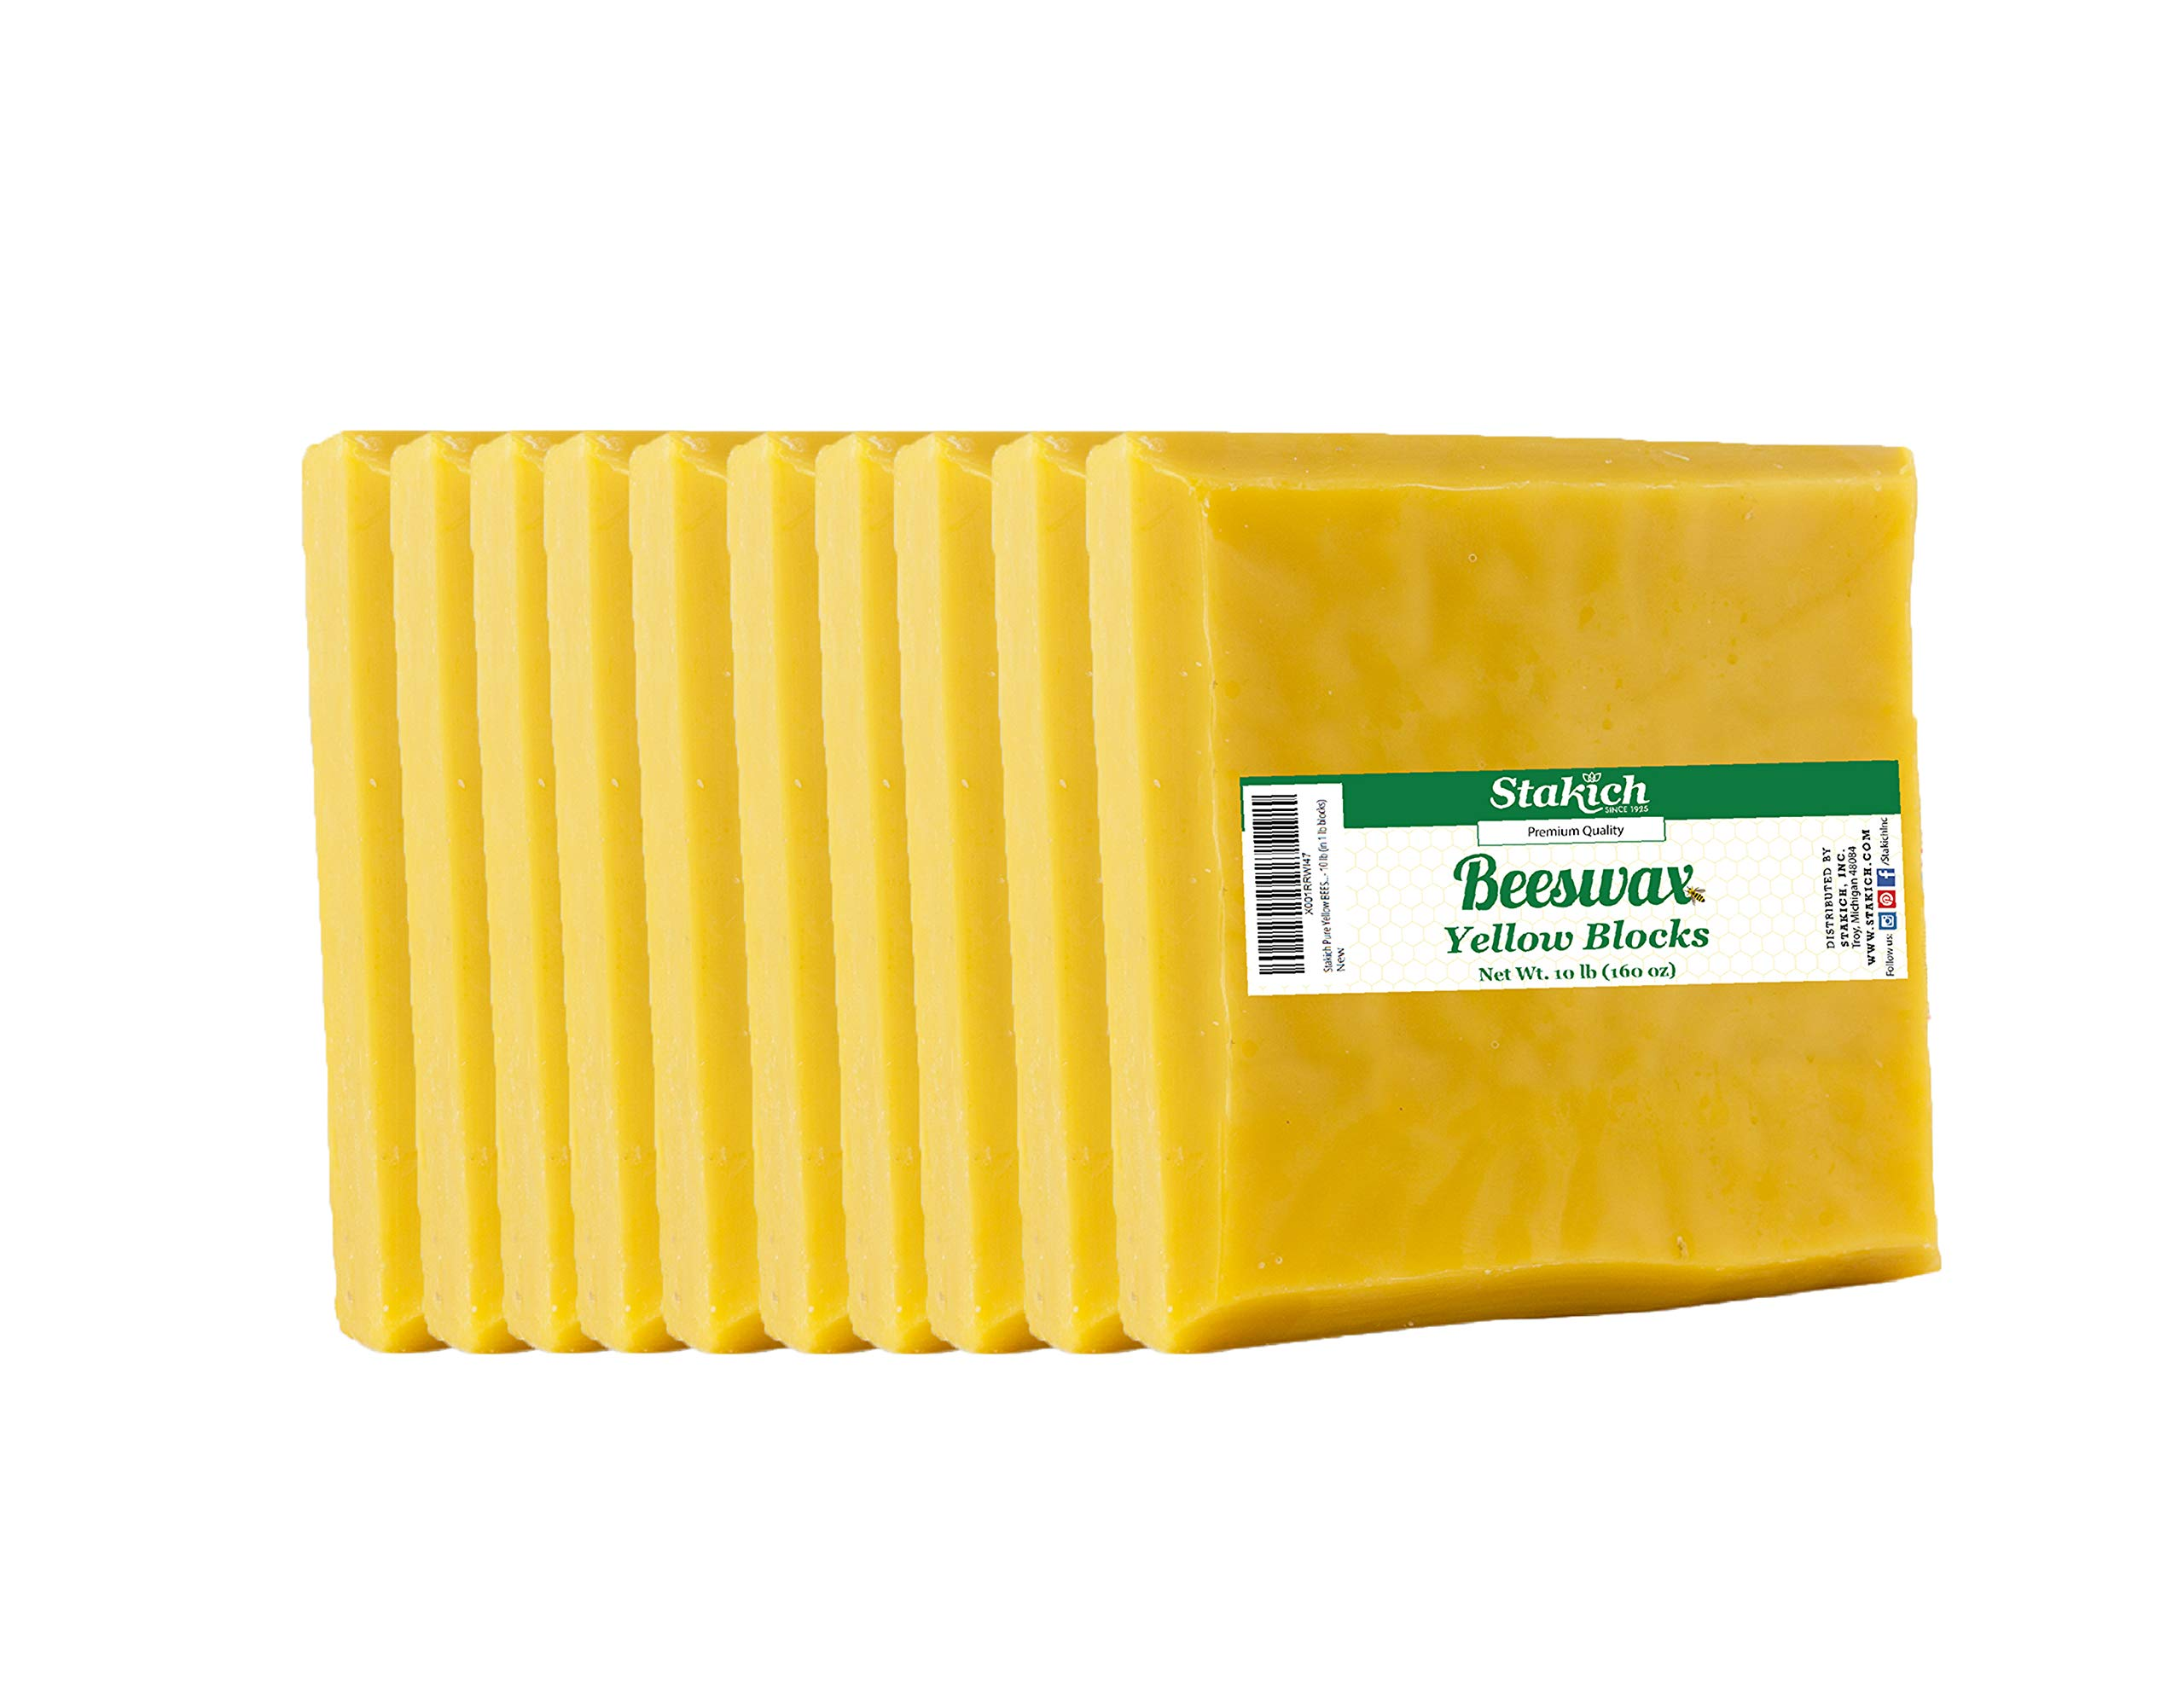 Stakich Yellow Beeswax Blocks - Natural, Triple Filtered - 10 Pounds (in 1 Pound Blocks)